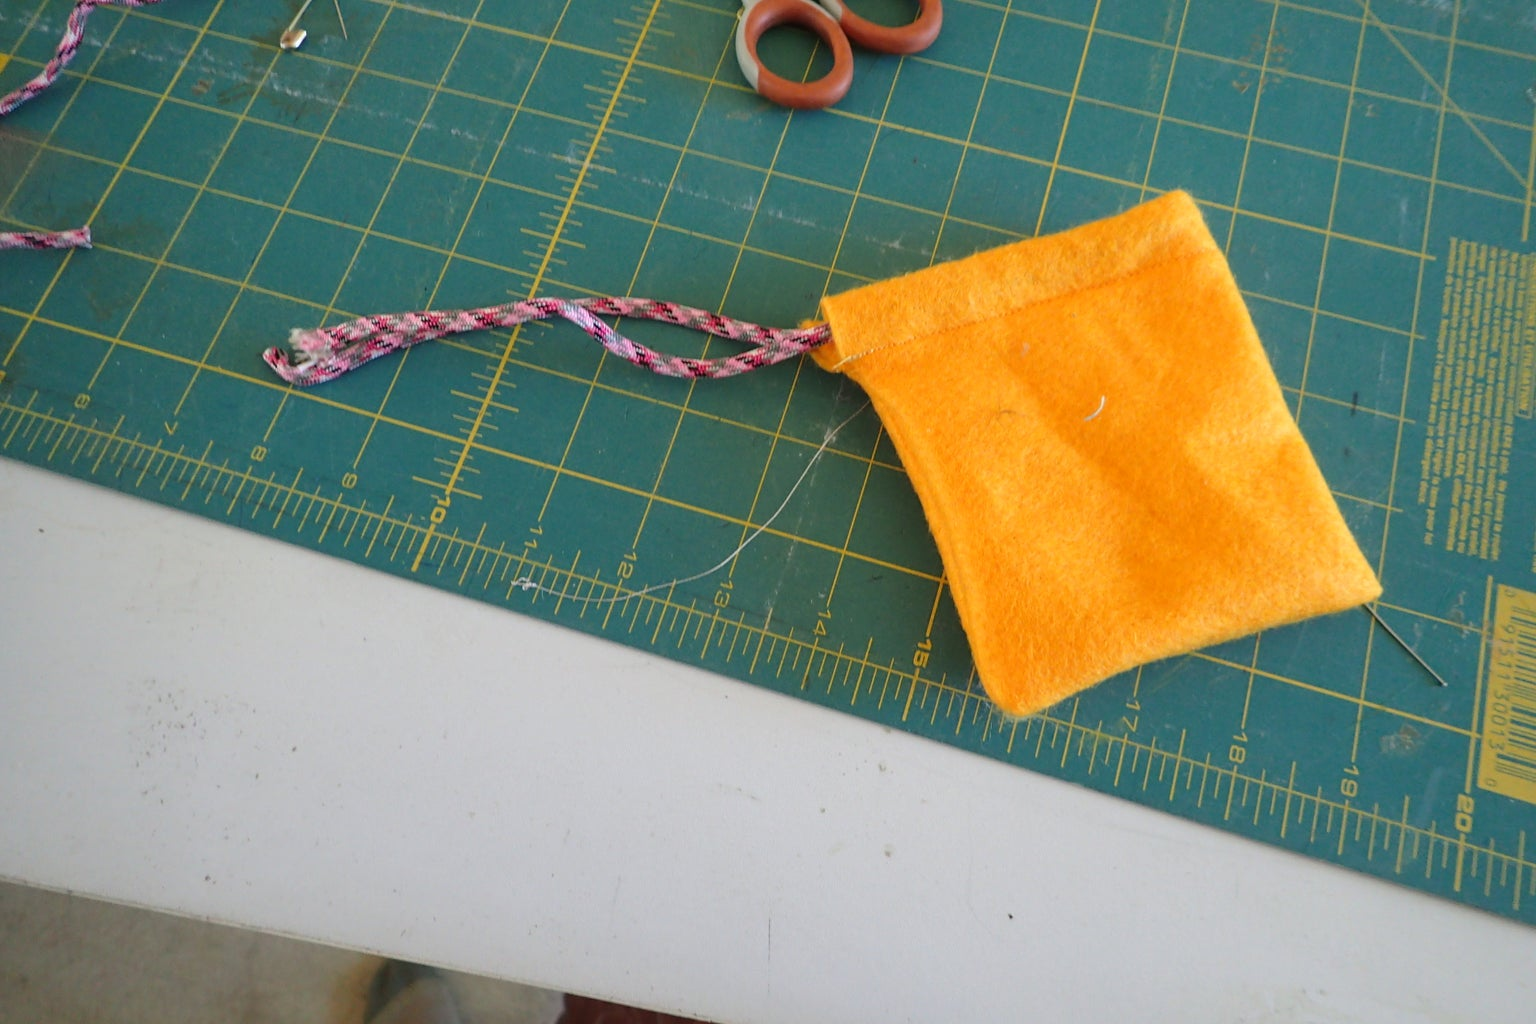 Keep Your Drawstring From Fraying at the Ends Needed